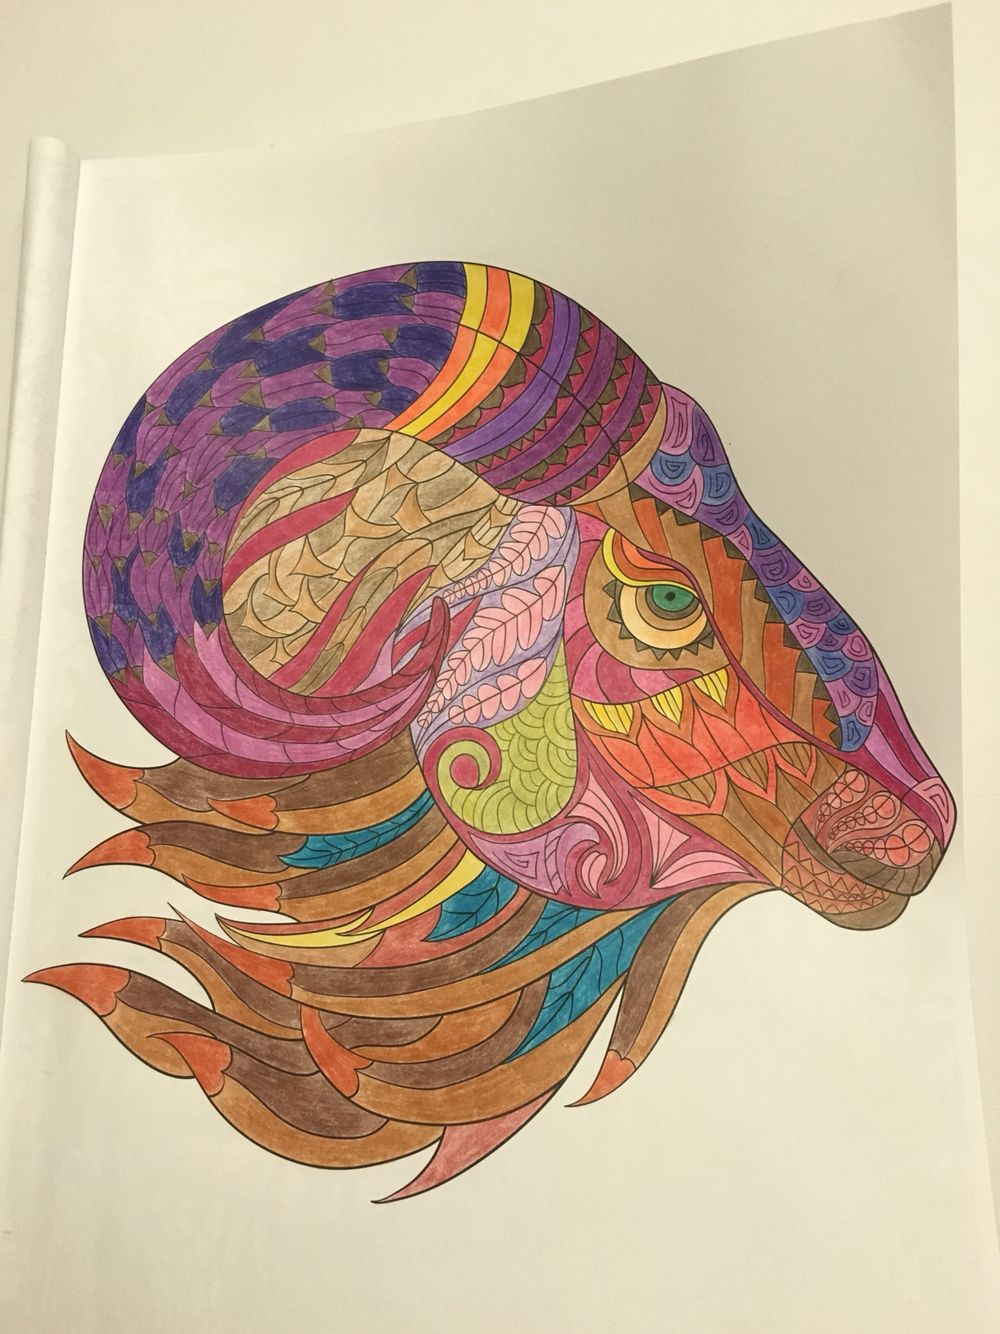 Ram Coloured With WH Smith Pencils And Polychromos